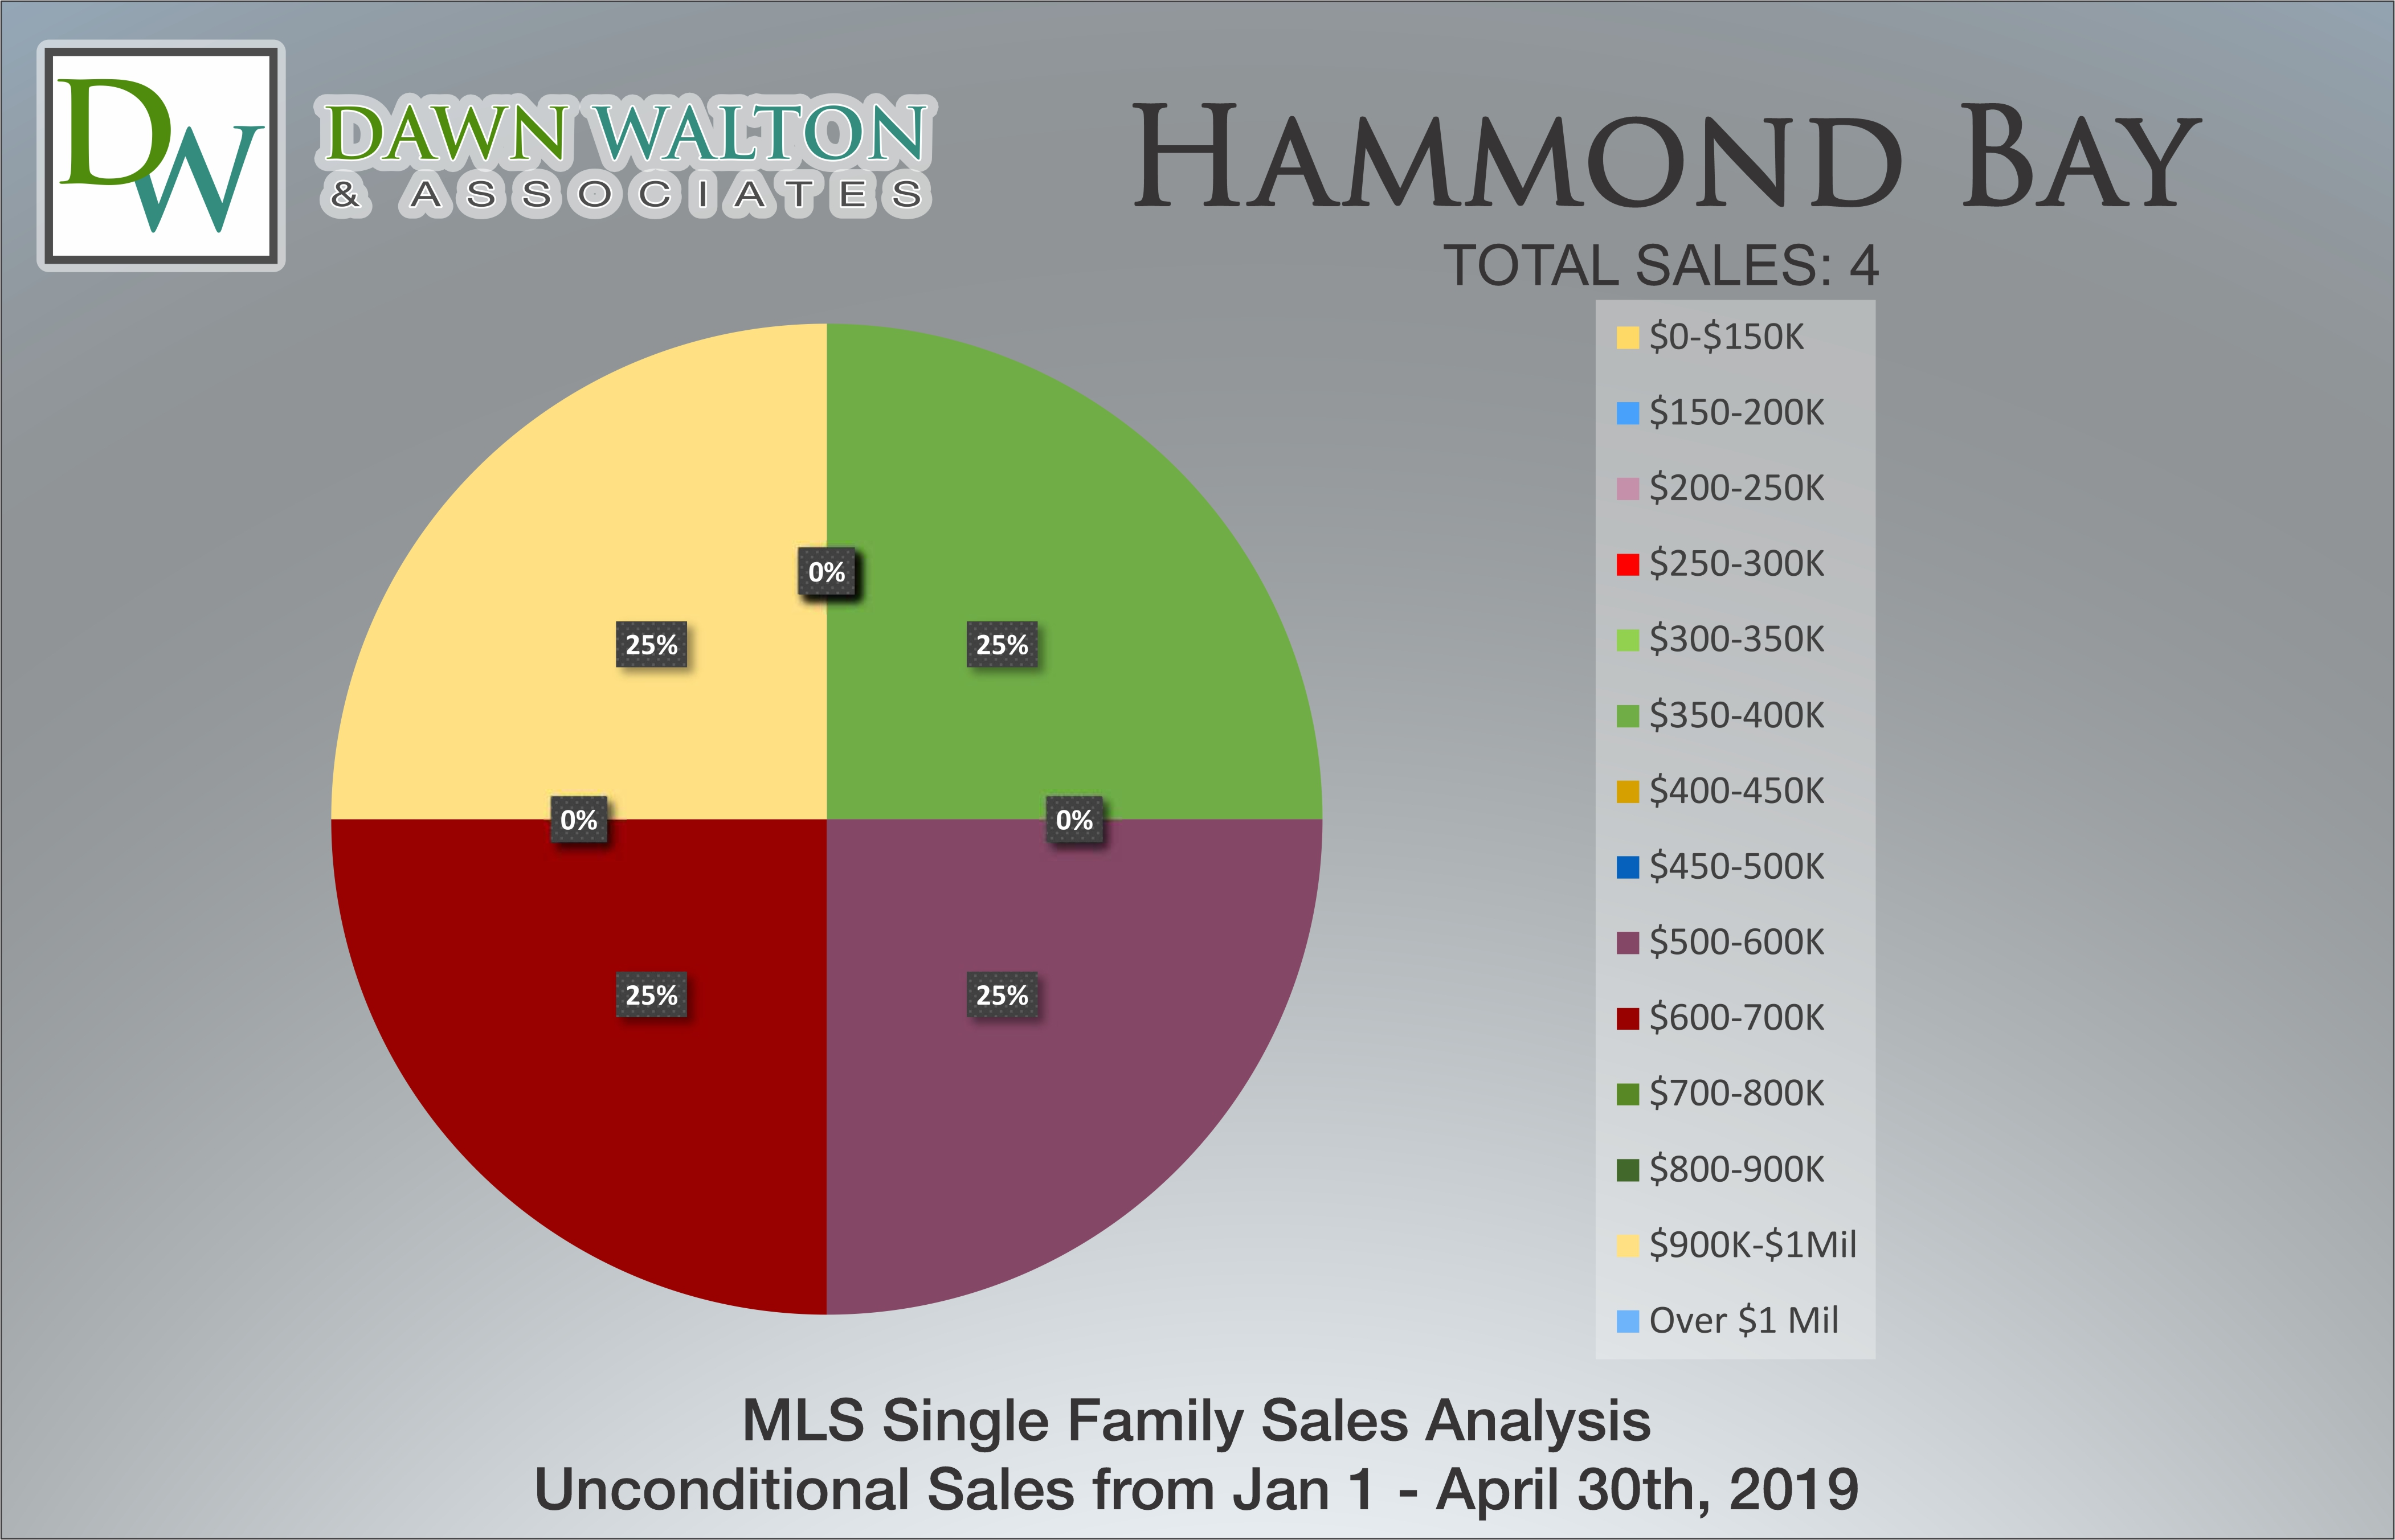 Hammond Bay Real Estate Market Stats Price Percentage Jan 1 - April 30, 2019 - Nanaimo Realtor Dawn Walton